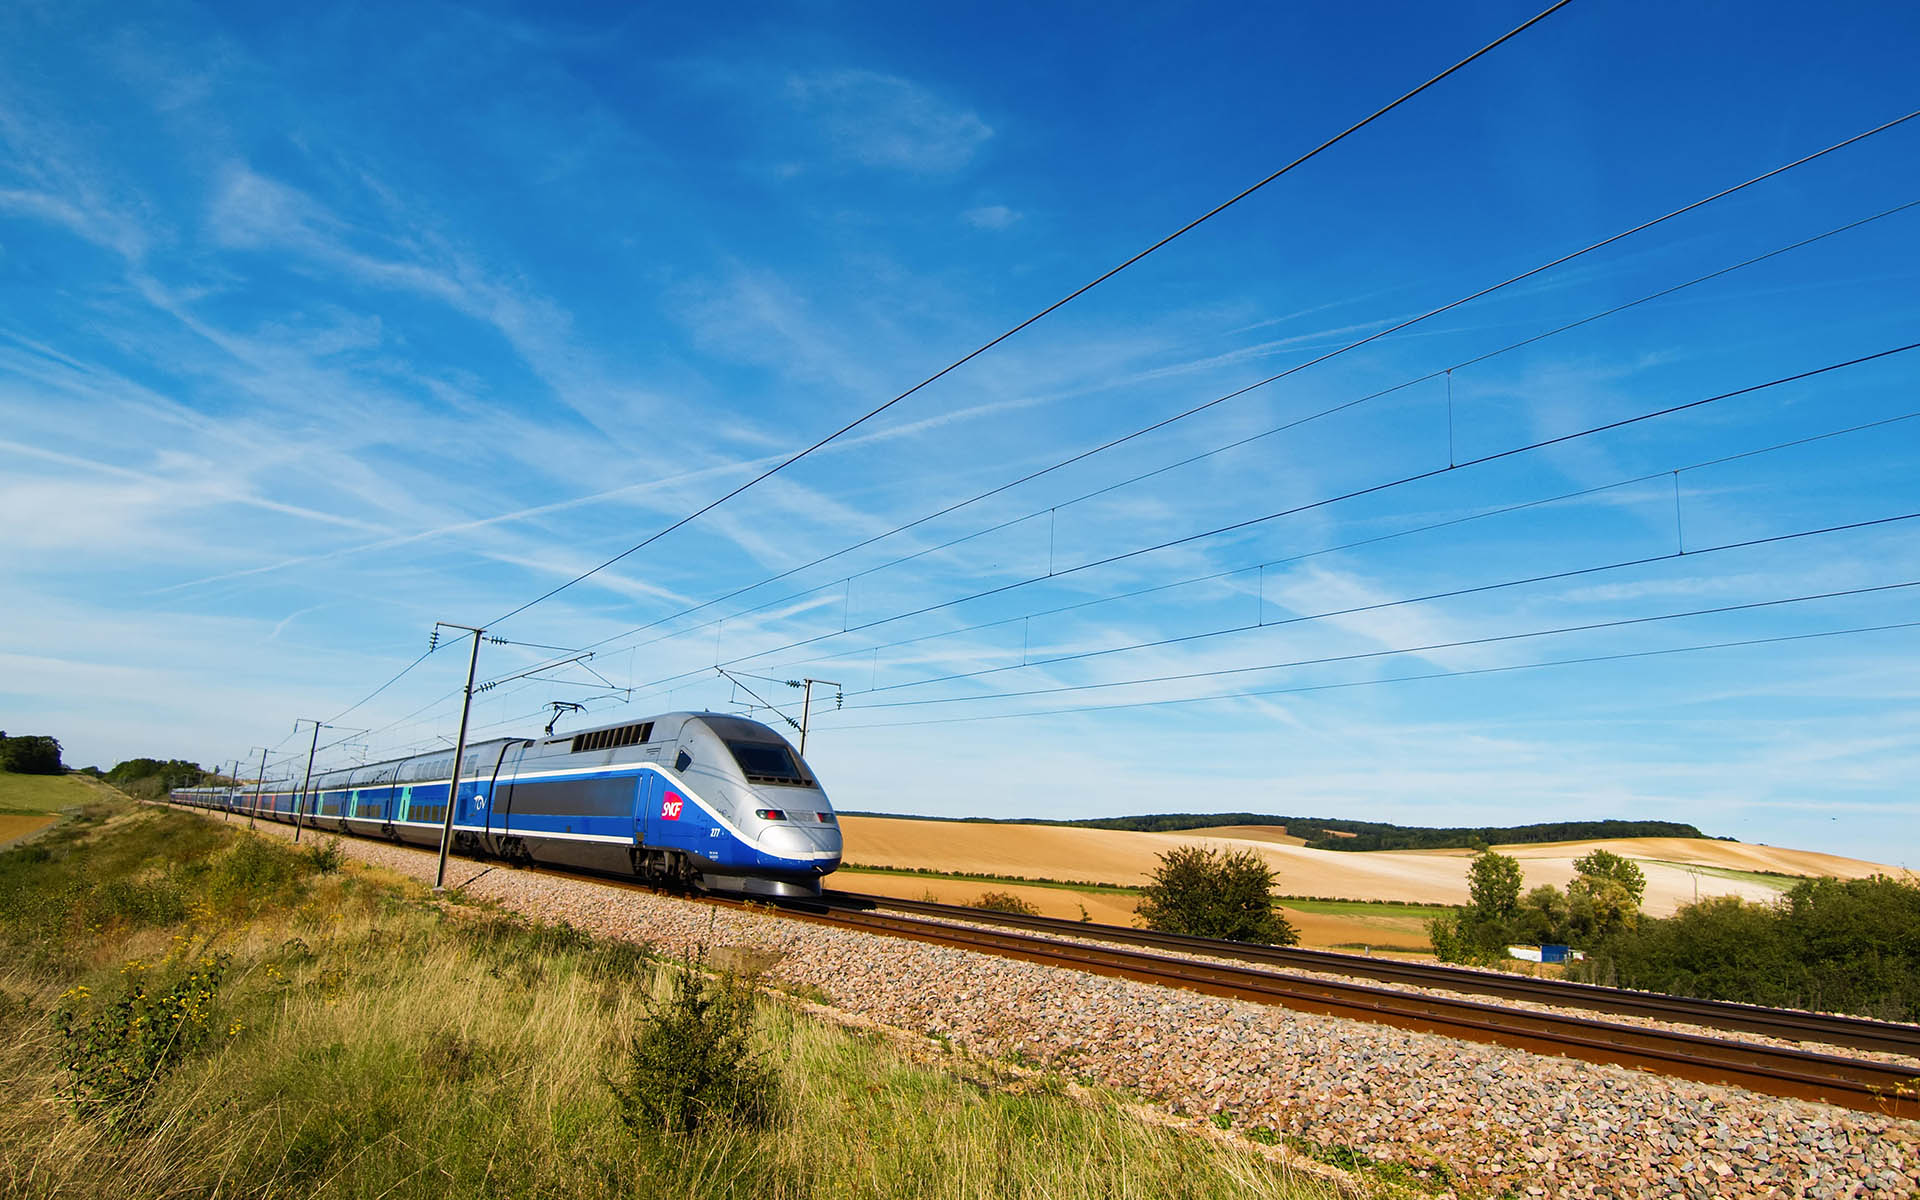 Sens, France - 15 September: A french high speed train passing through a field.